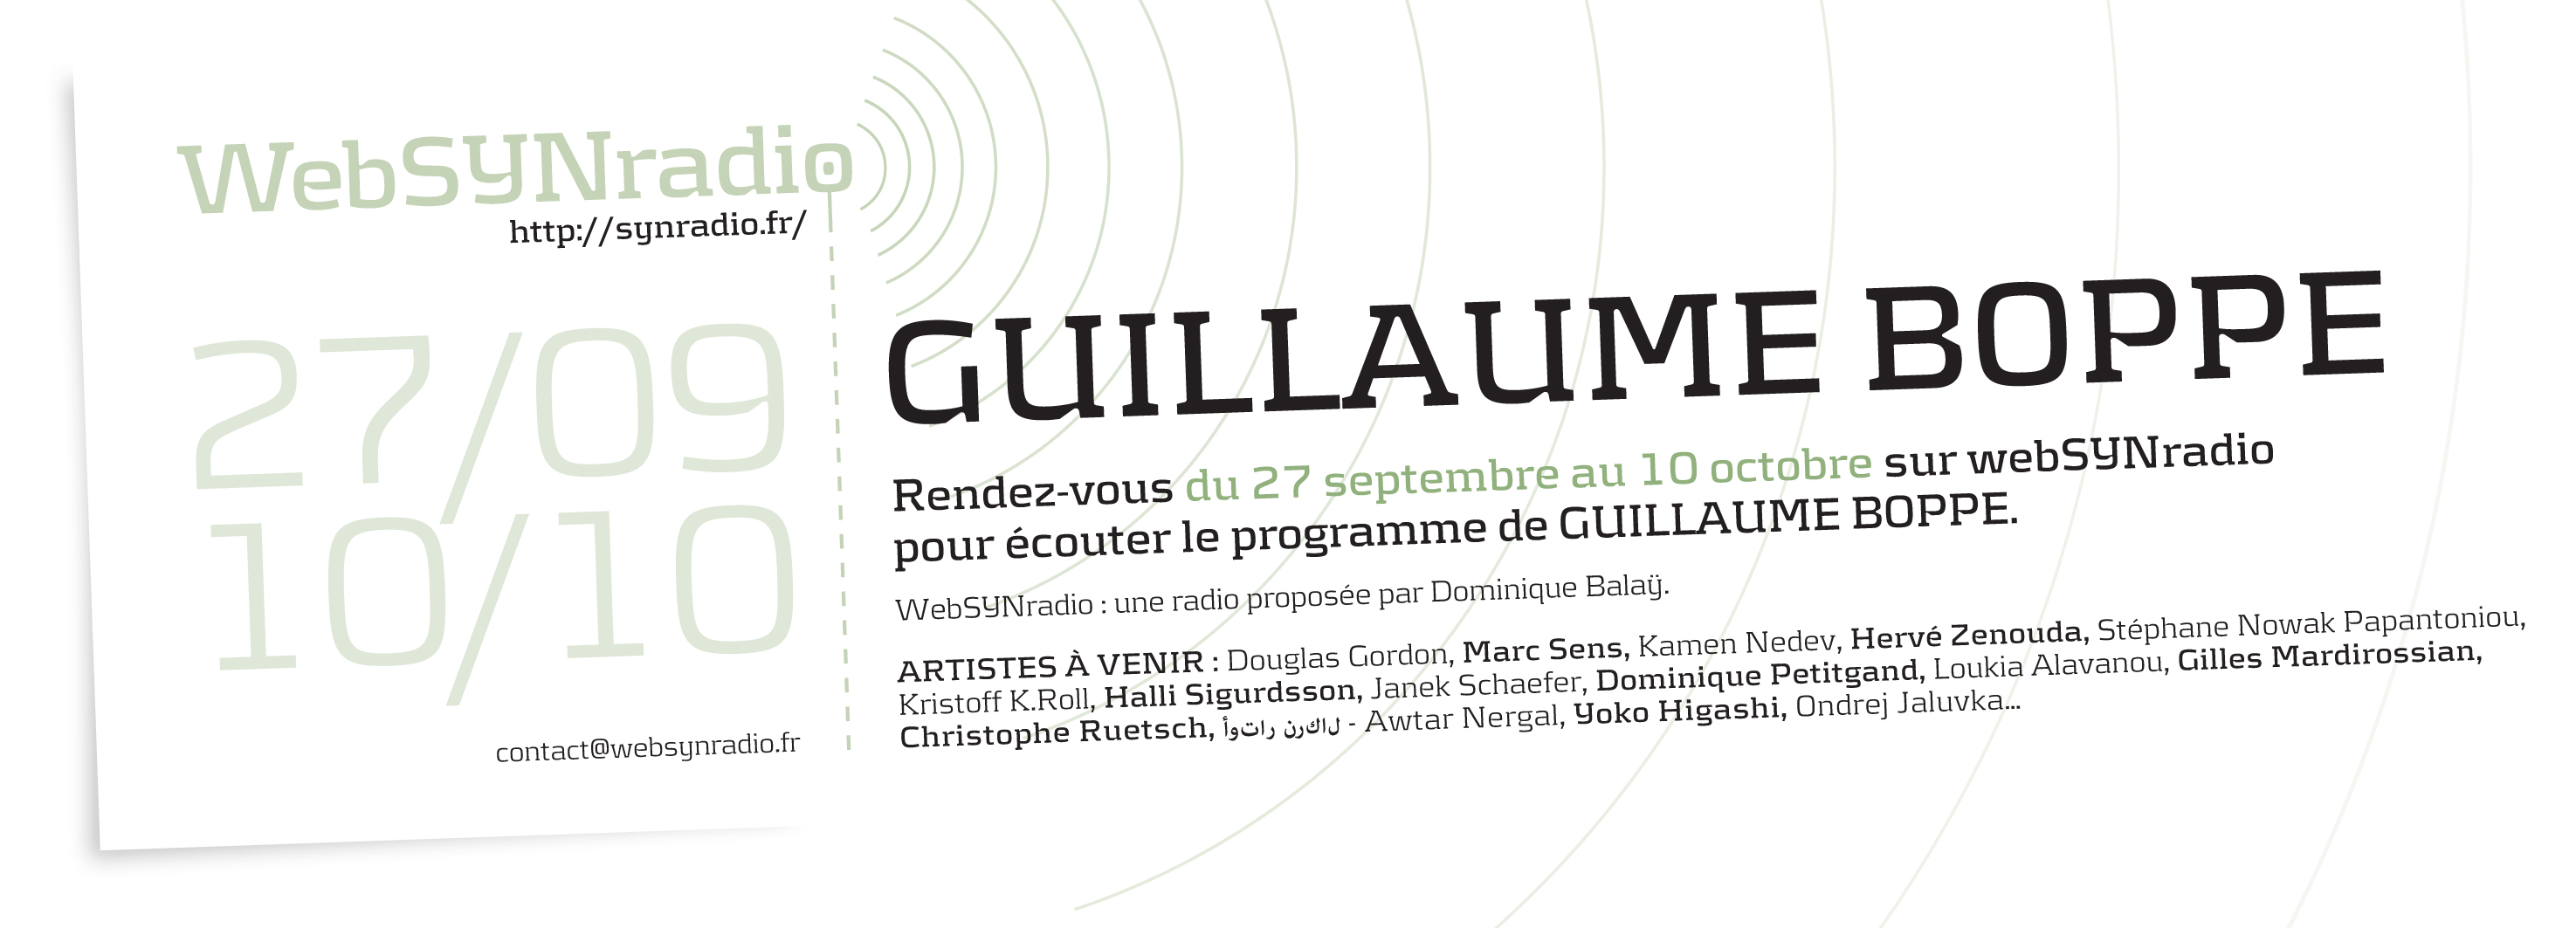 Guillaume-Boppe synradio